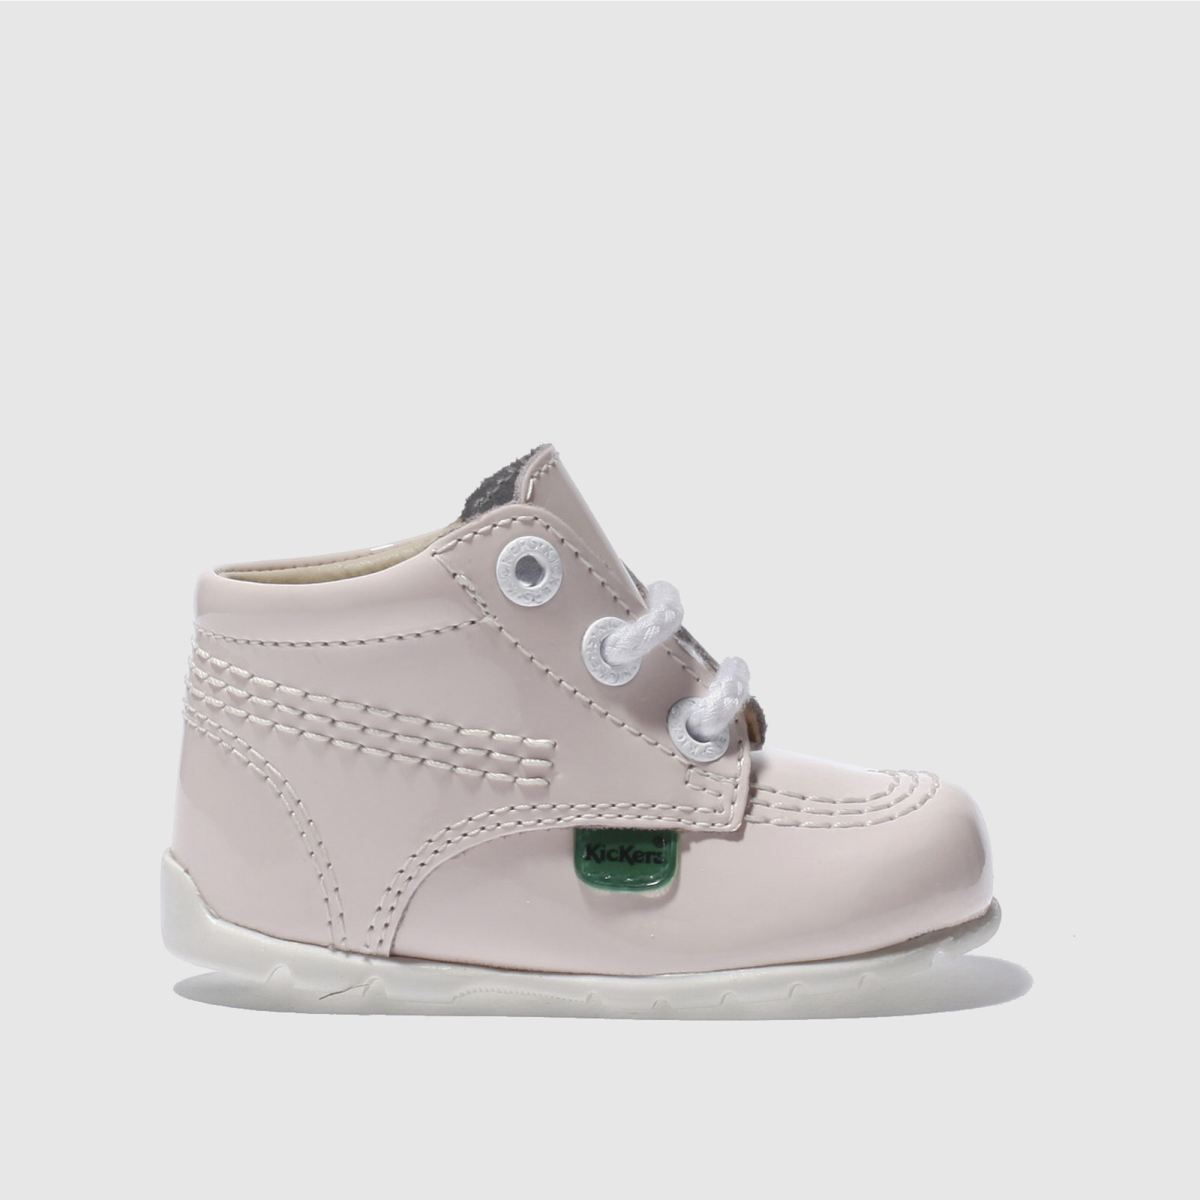 kickers pale pink hi patent lace Girls Baby Boots